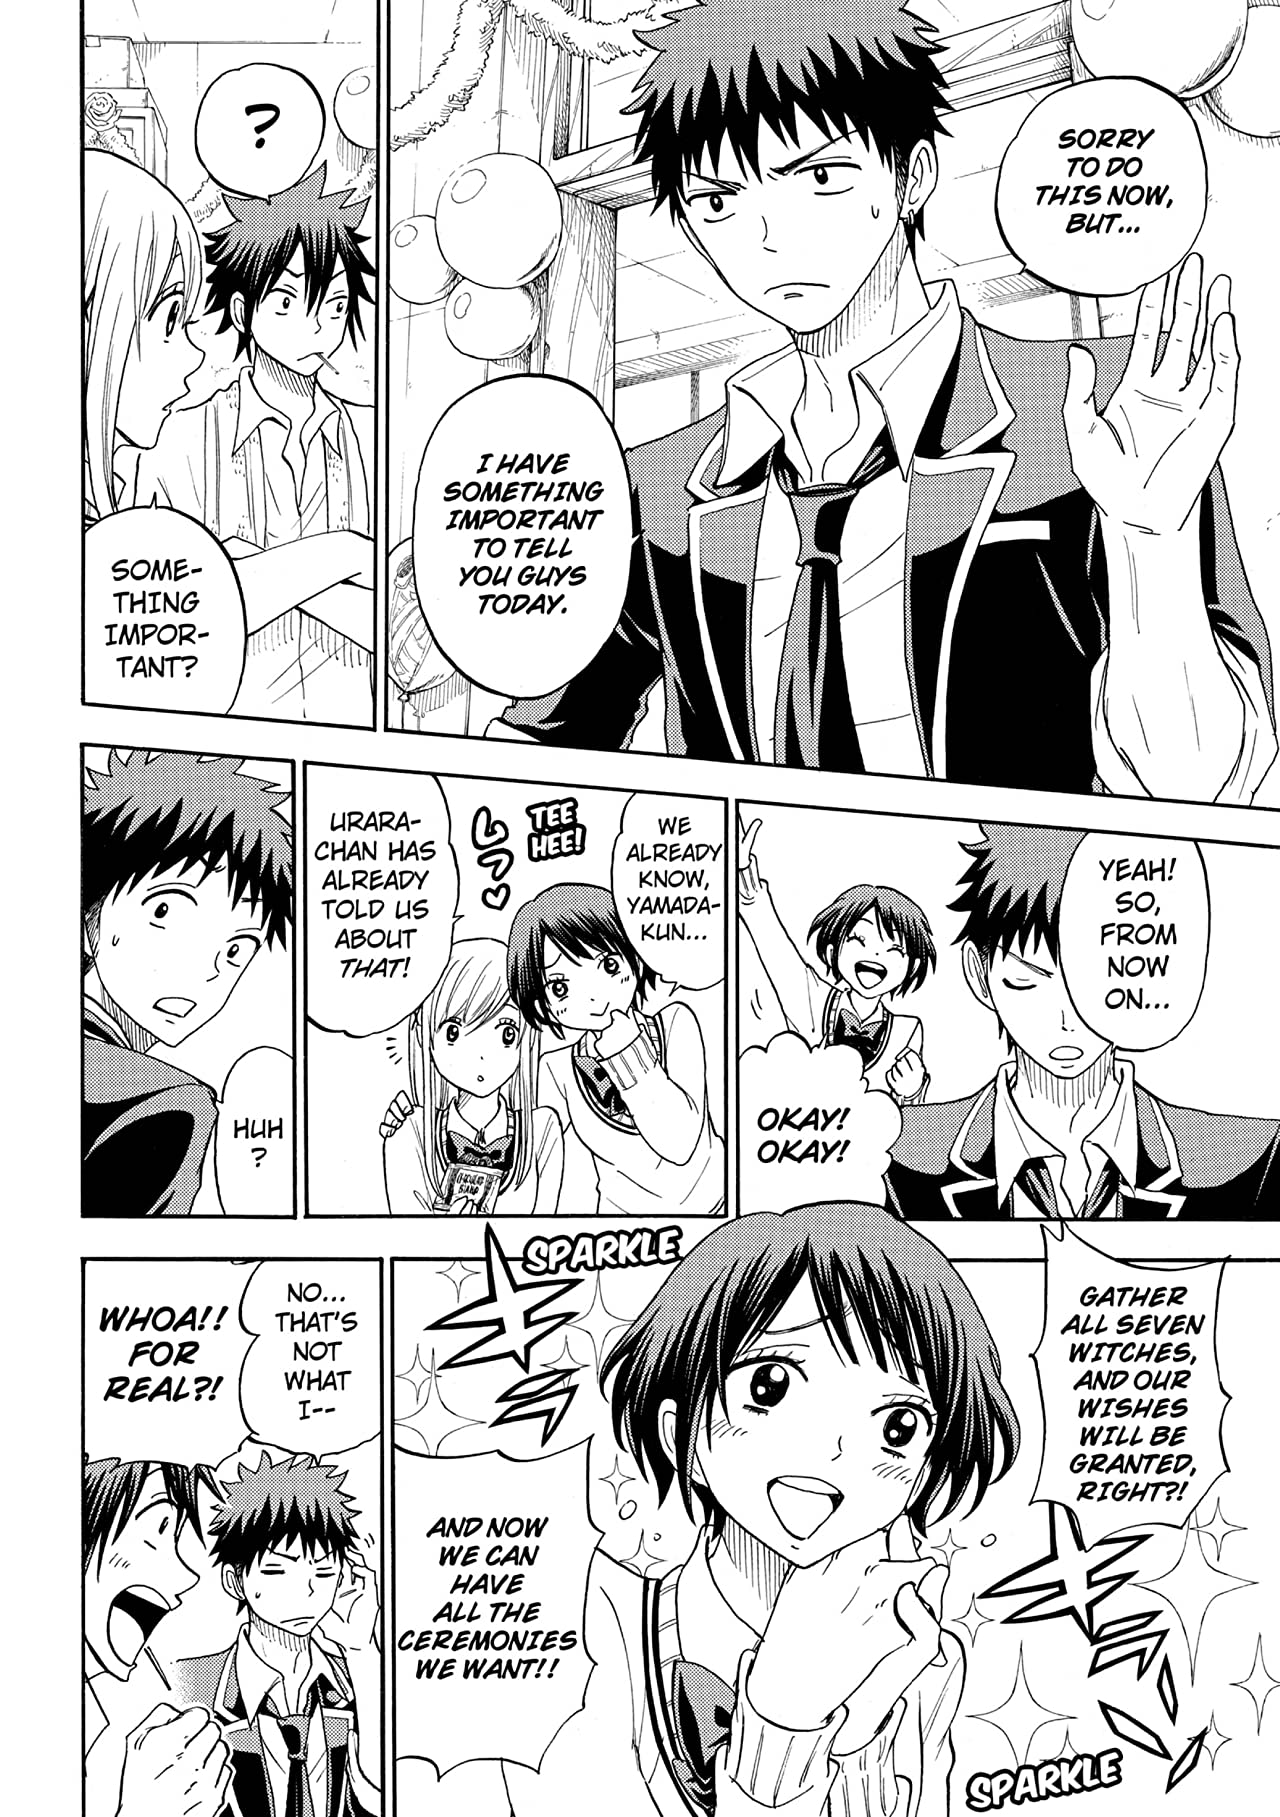 Yamada-kun and the Seven Witches #89